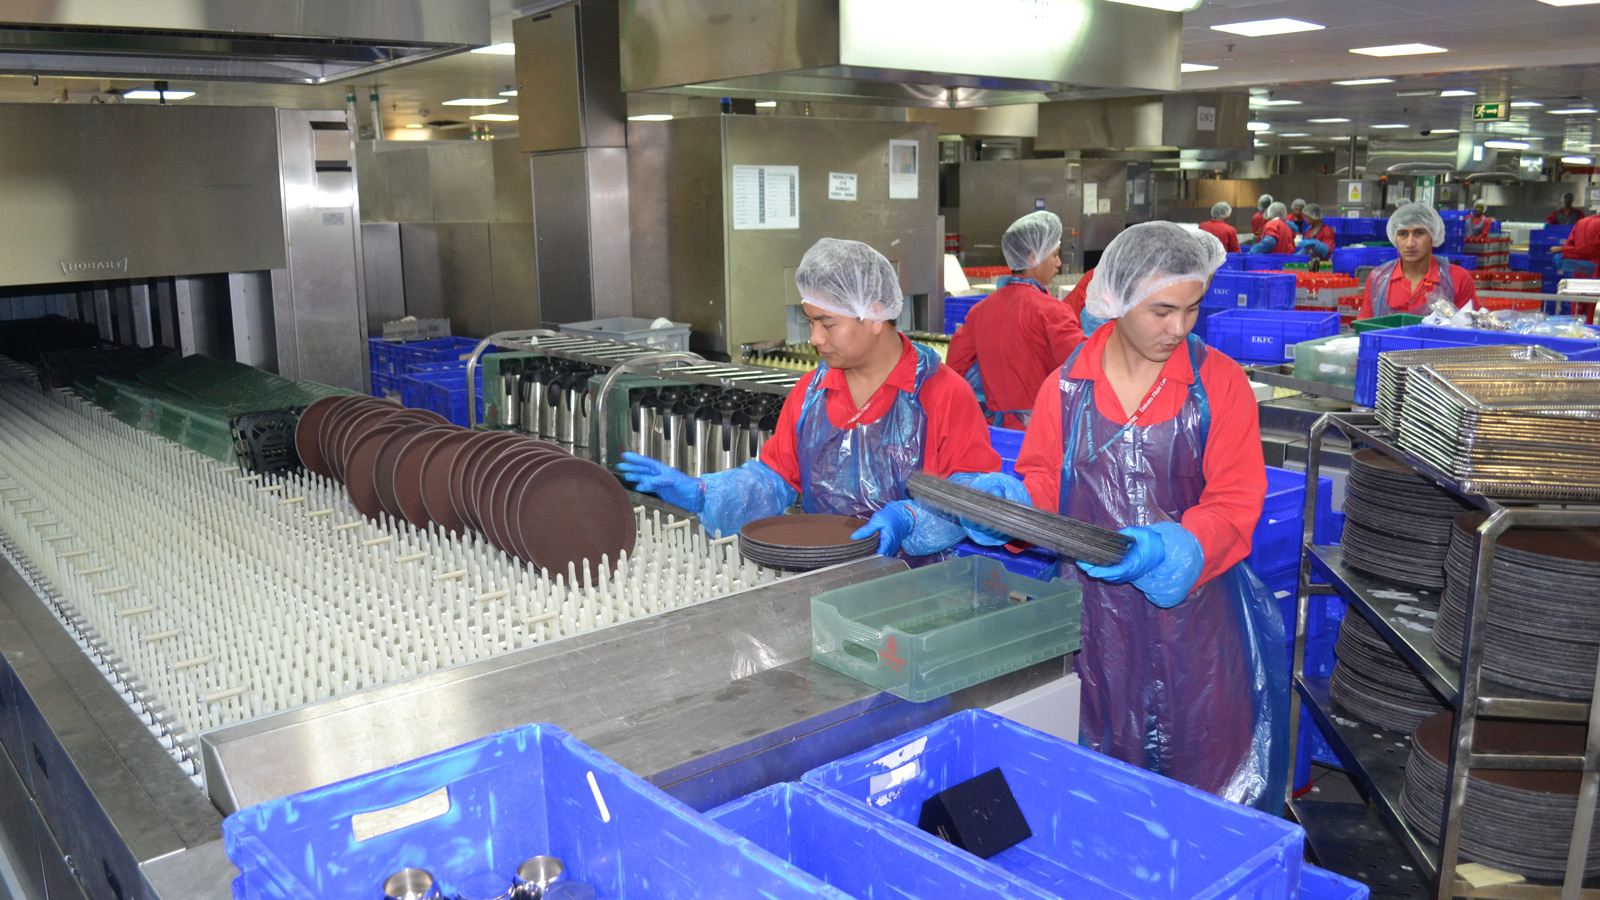 Airline food: Emirates airline dishes out 180,000 meals | CNN Travel